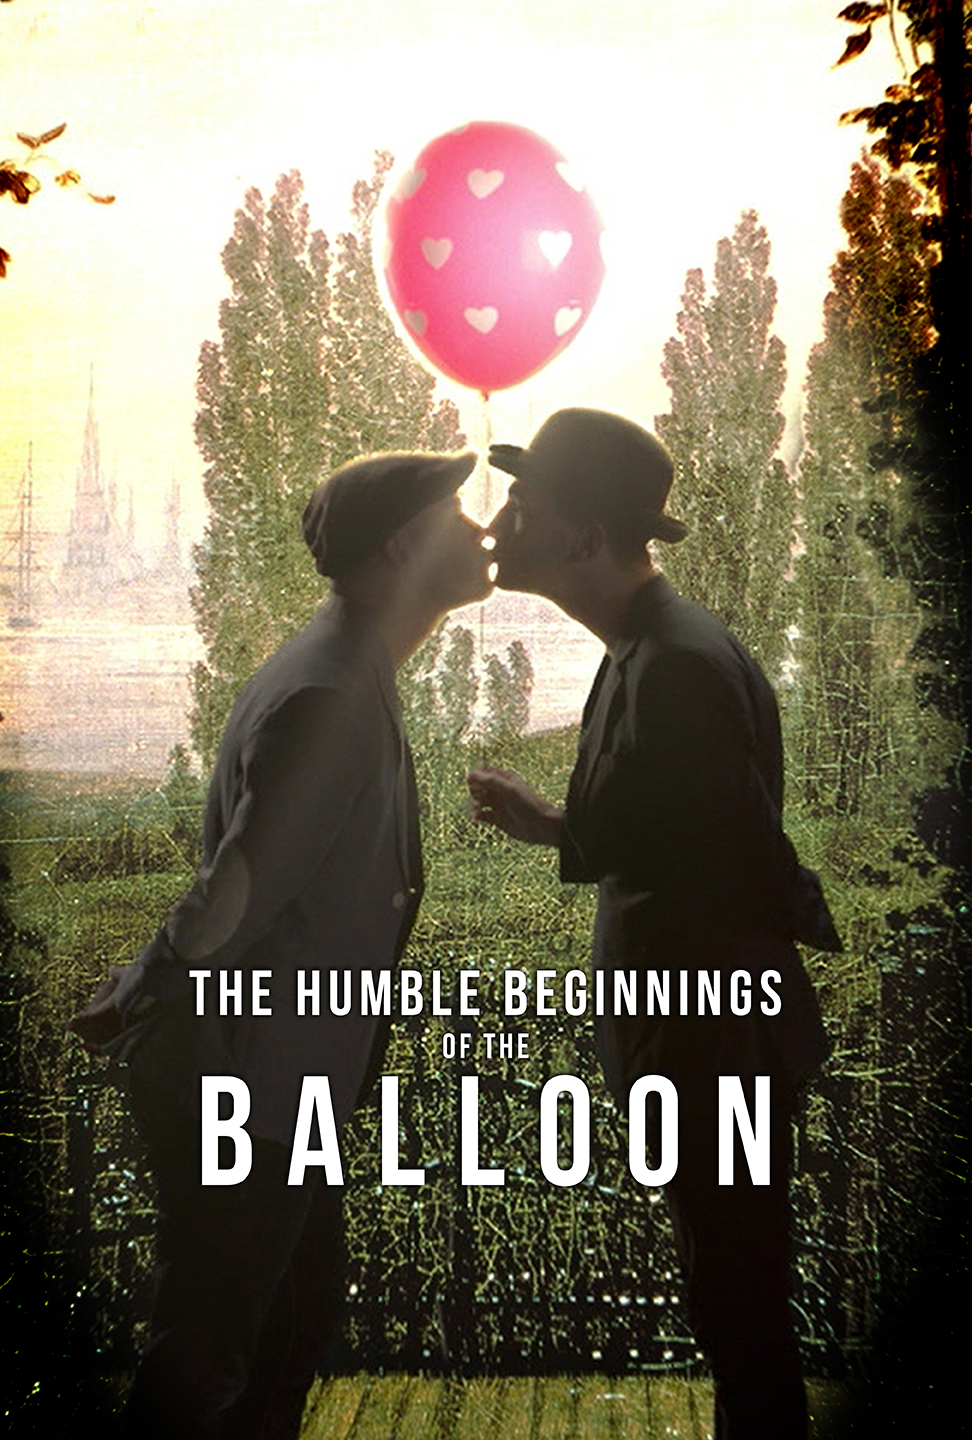 THE HUMBLE BEGINNINGS OF THE BALLOON